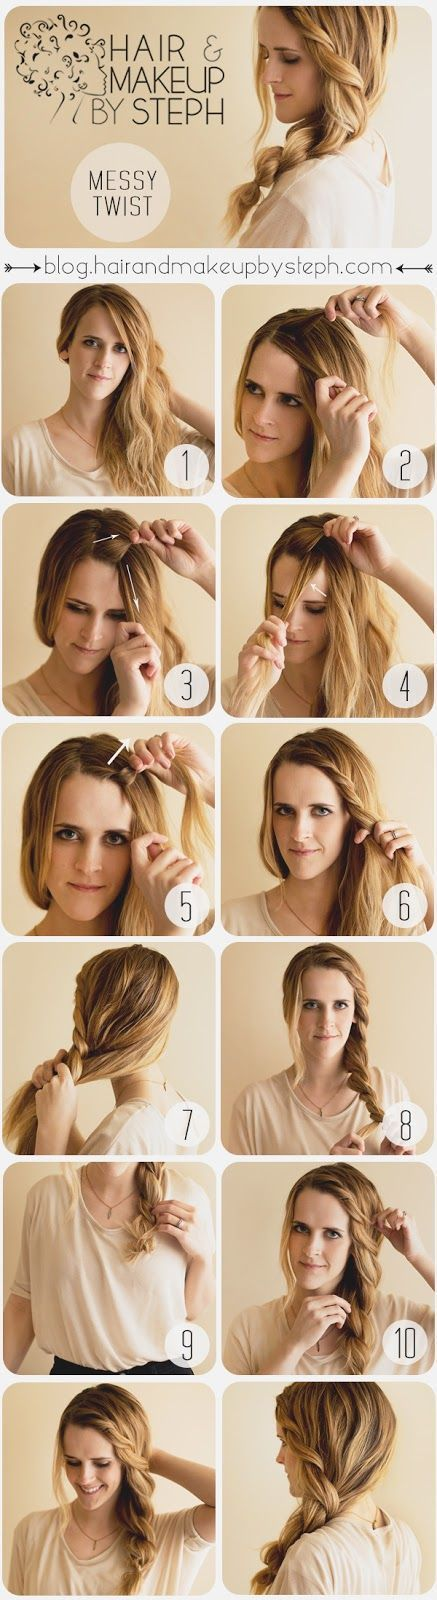 40 super cute and easy hairstyle tutorials that are quick and easy to follow. Almost 40 tutorials to help get great look for hairs.